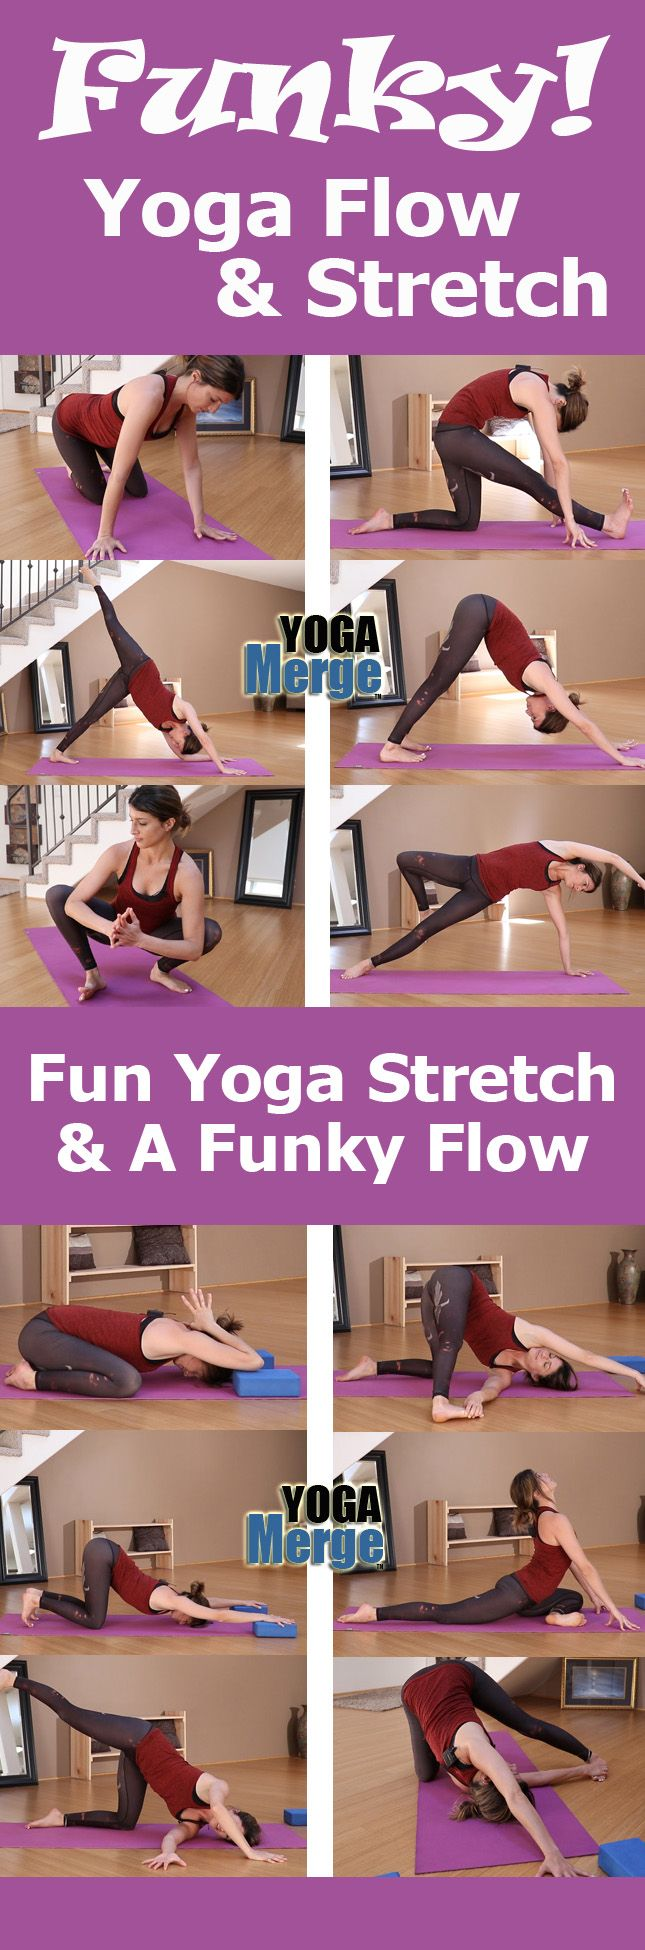 Funky Fun Yoga Flow & Stretch! Hit the mat for some unique and fun classes. Online yoga videos for your home yoga practice!